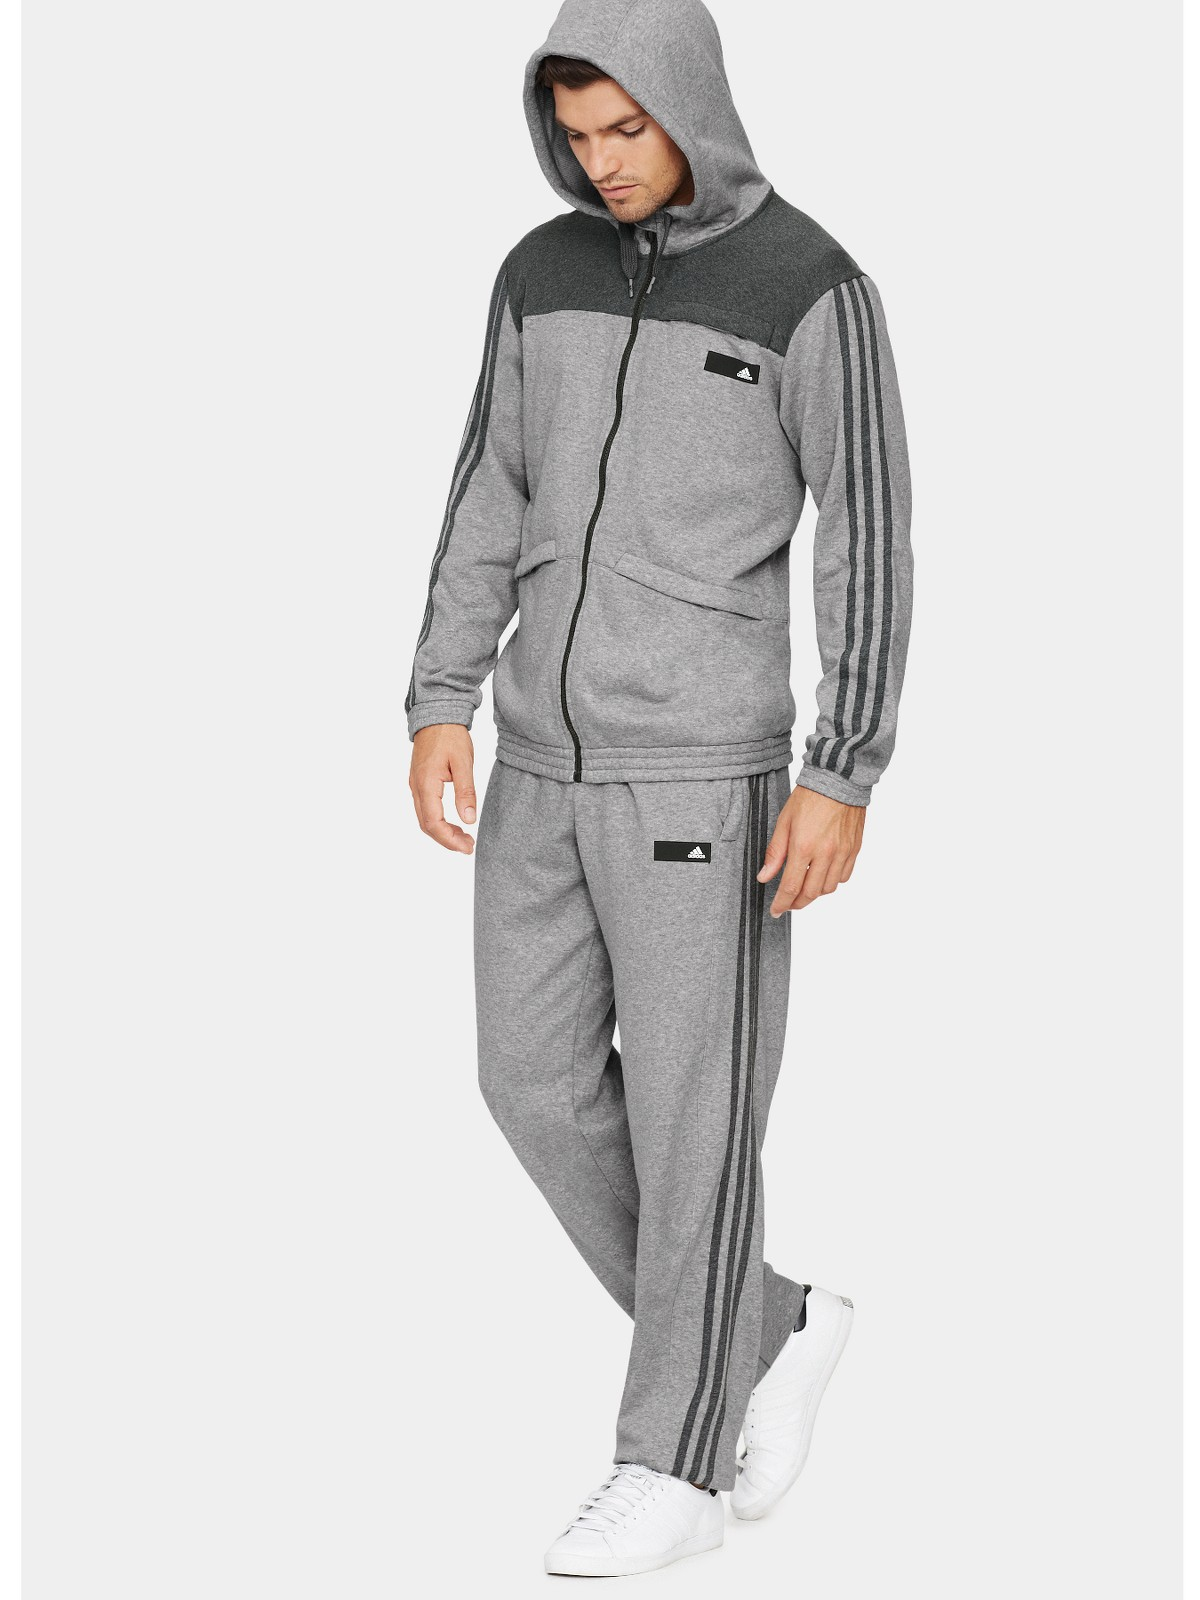 Nike men's tracksuits provide an athletic look and feel that you can show off during football matches, training at the gym or on the street. No matter your style or needs, Nike has the tracksuit for you.